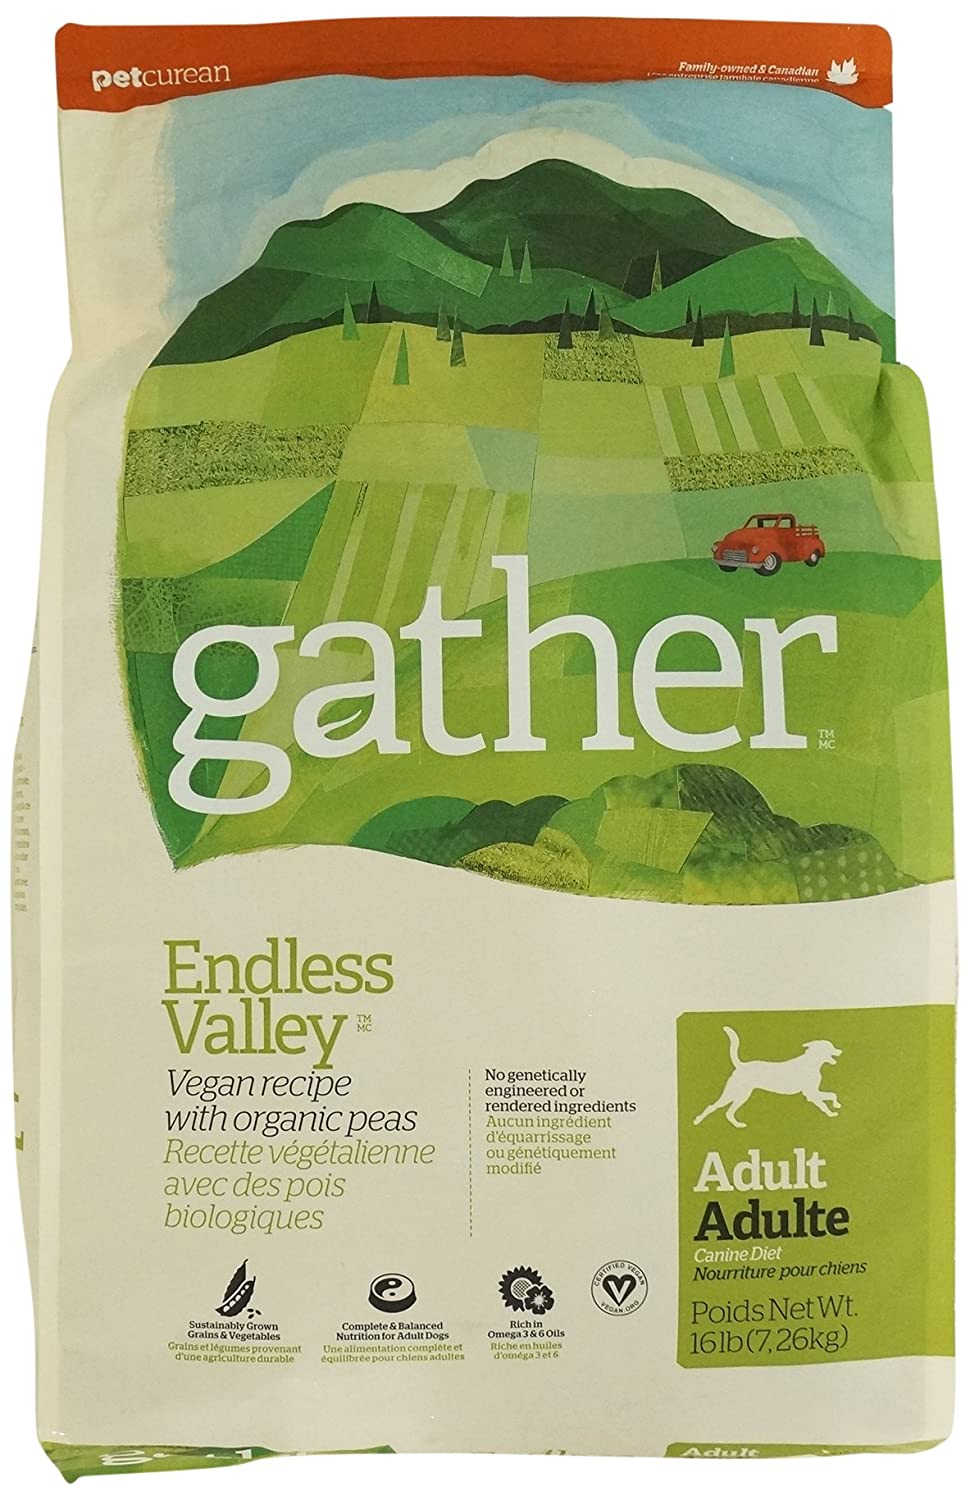 Petcurean Gather Endless Valley Vegan Recipe Dry Dog Food – 16 lb. Bag